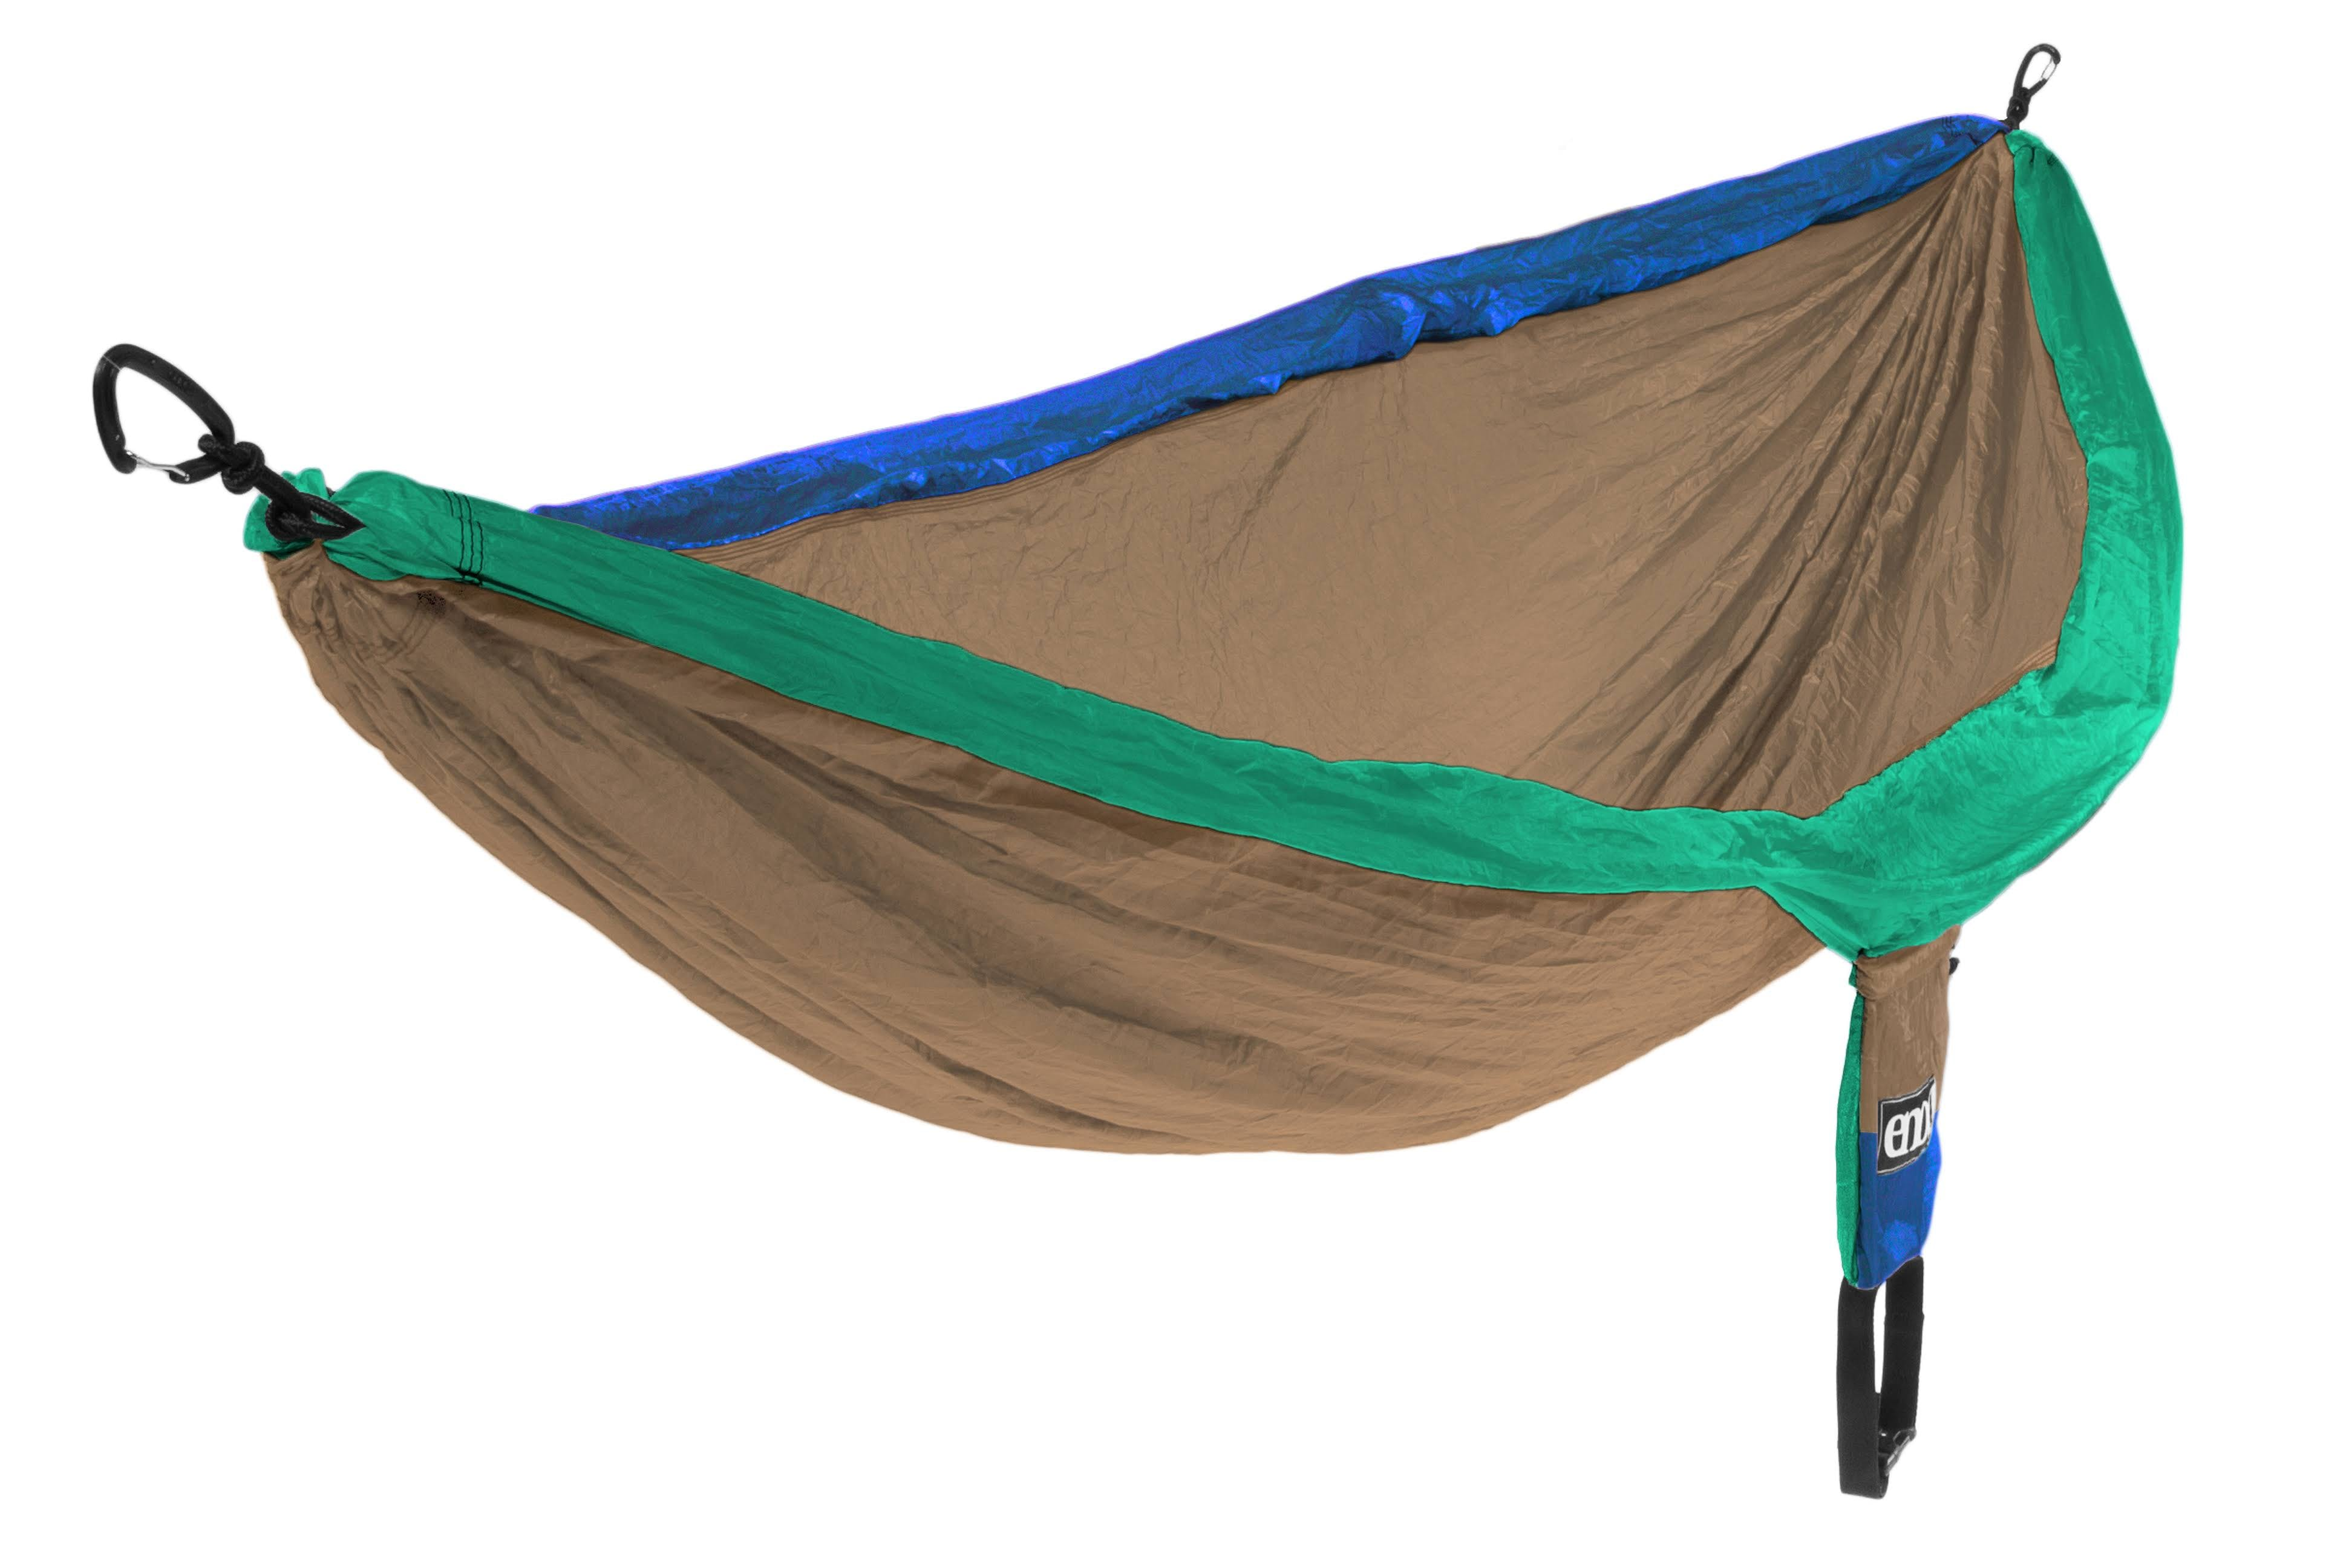 Eagles Nest Outfitters - DoubleNest Hammock, ATC Special Edition